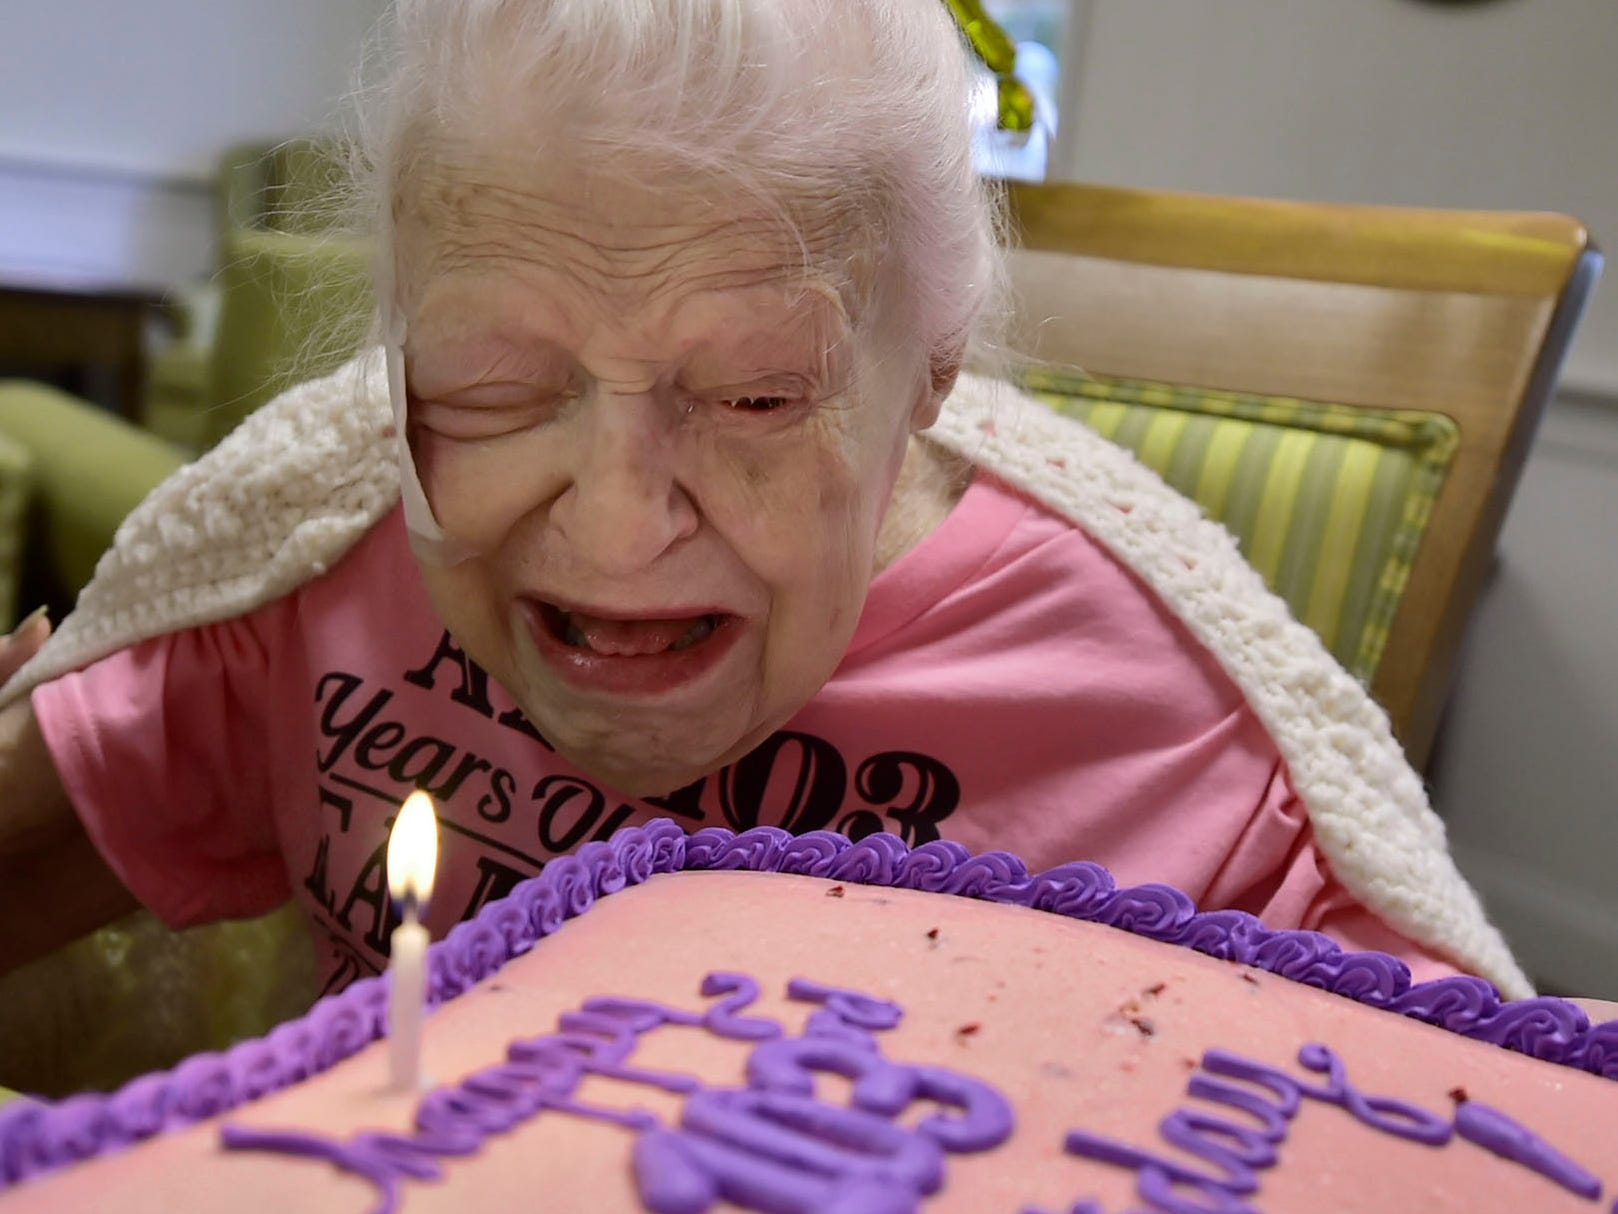 Lillian Hoff, who turned 103-years-old, blows out a candle at her birthday party on Monday, September 10, 2018 at Providence Place, Chambersburg. Hoff, a homemaker,  was born in 1915 in Akron, OH, and raised her three children in Cleveland. Family, staff and their children attended the party in the facility's terrace.